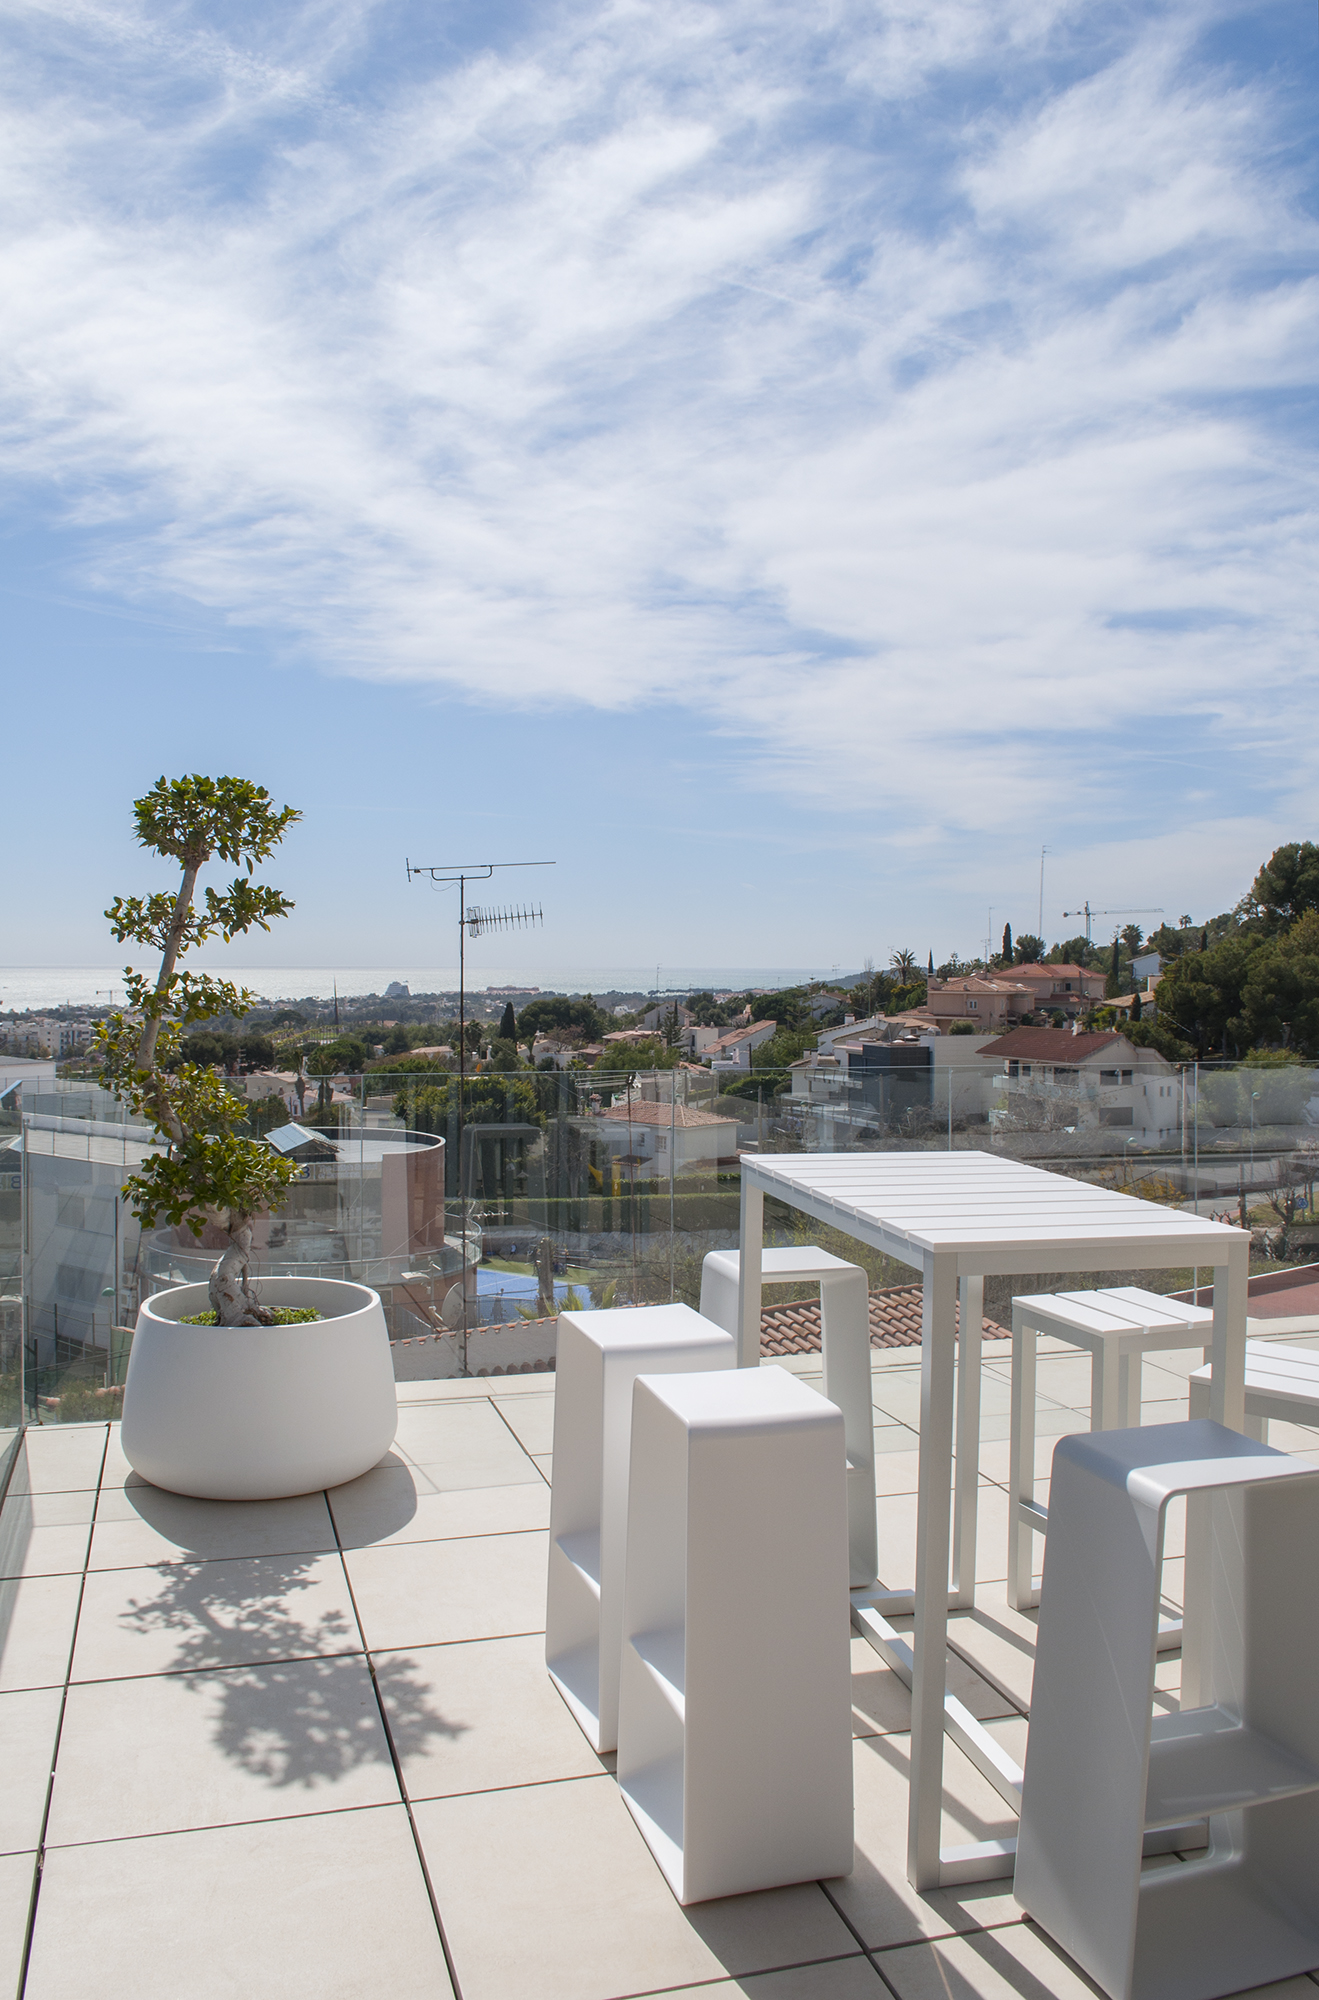 12-a-rardo-architects-houses-in-sitges-sea-view-terrace